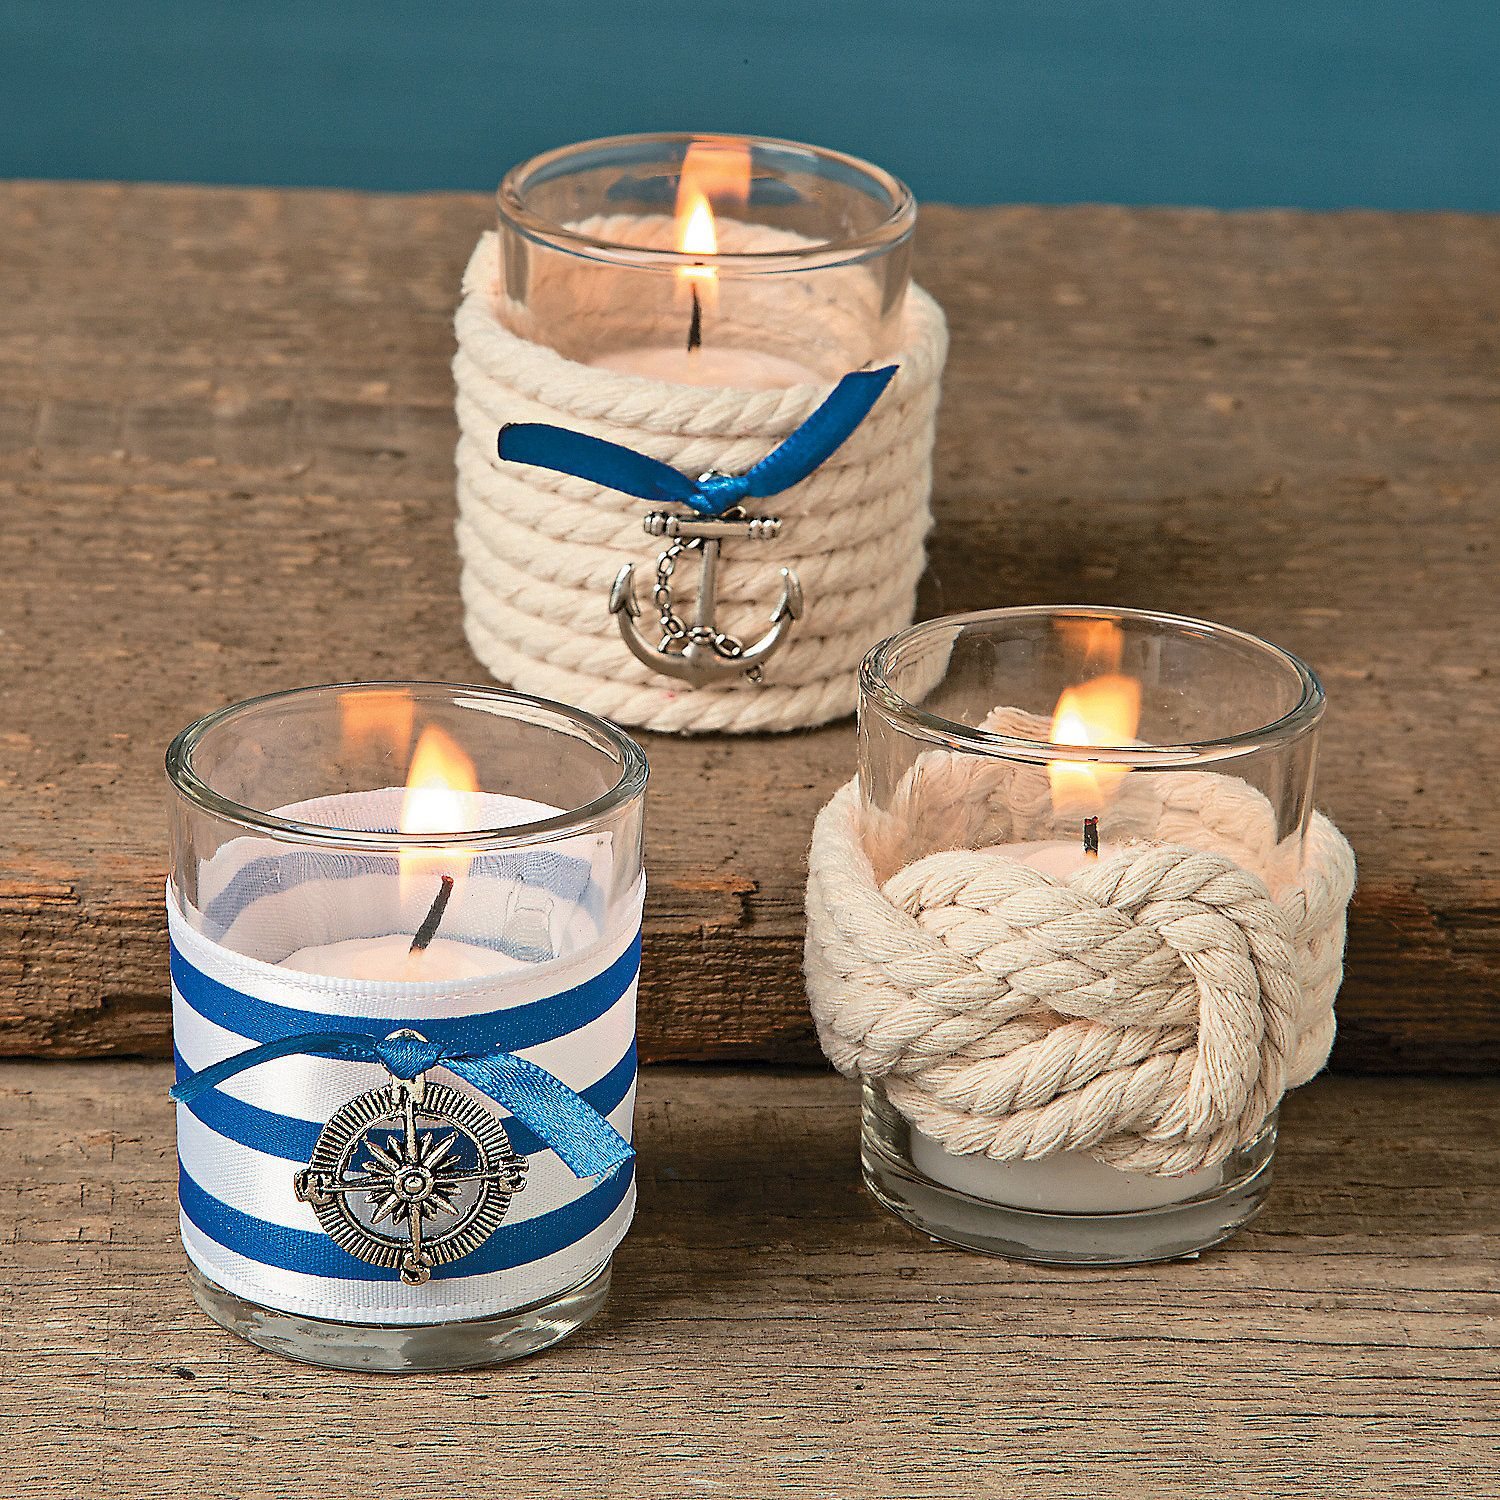 Nautical Event Decor: These Nautical Votive Holders Are A Must For Your Nautical